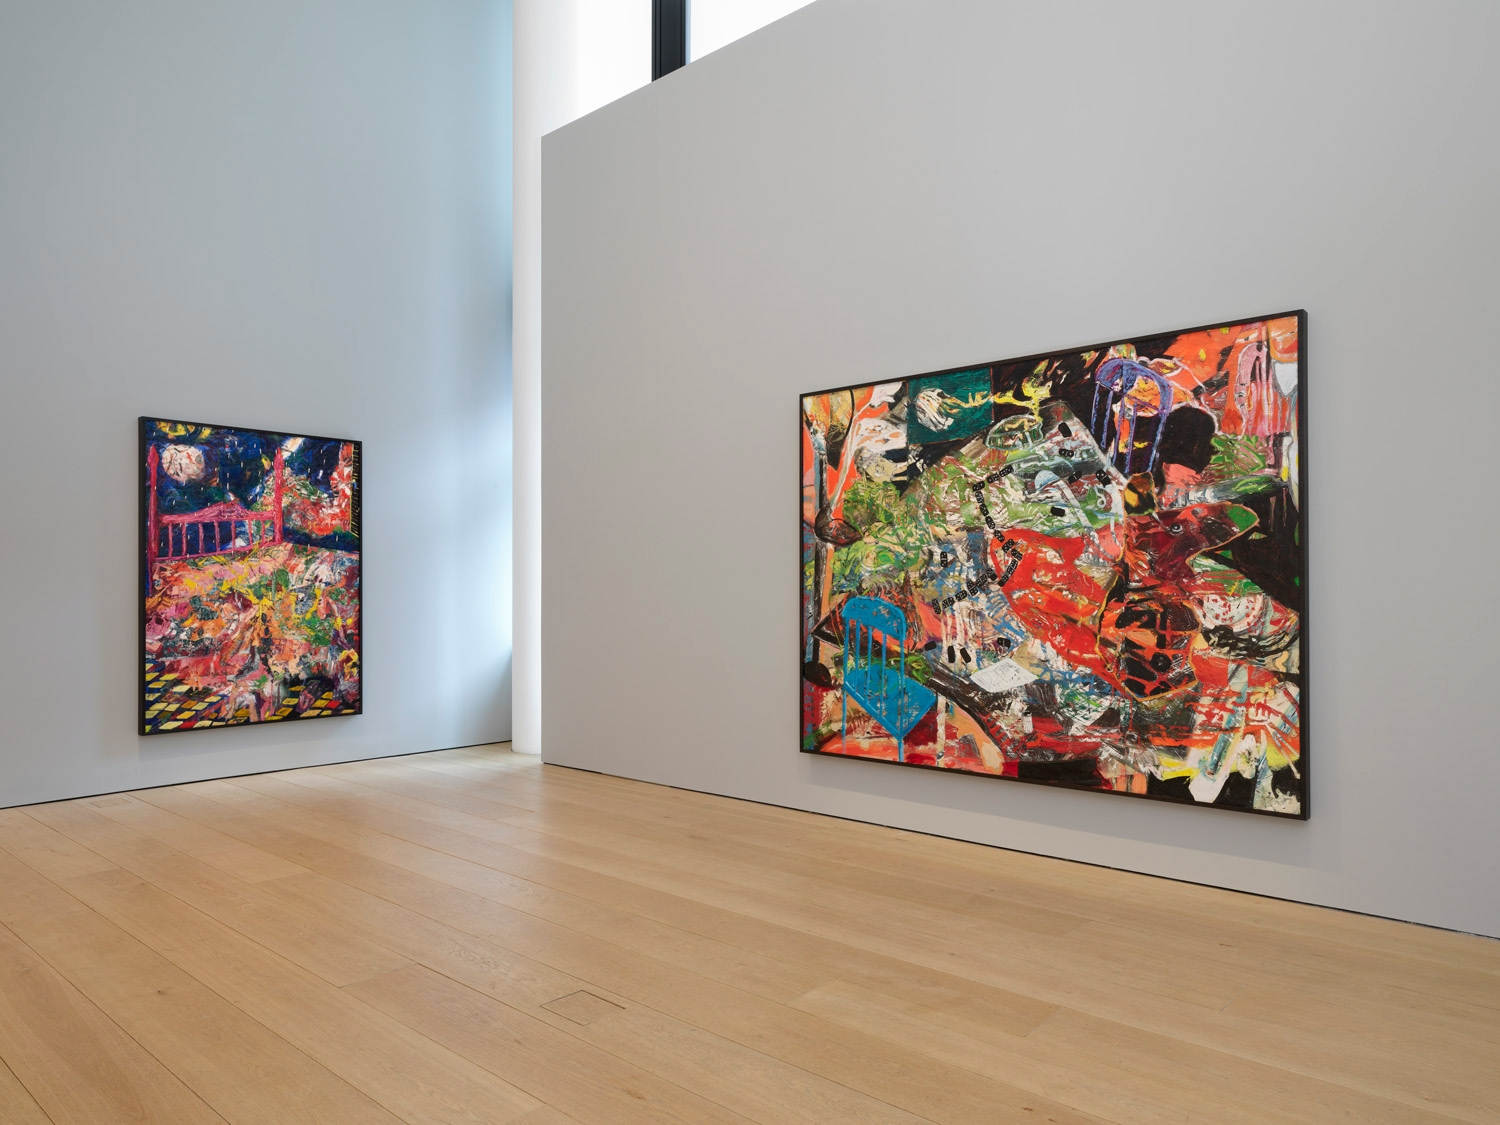 Second installation view of the exhibition Angel Otero: The Fortune of Having Been There at Lehmann Maupin in New York